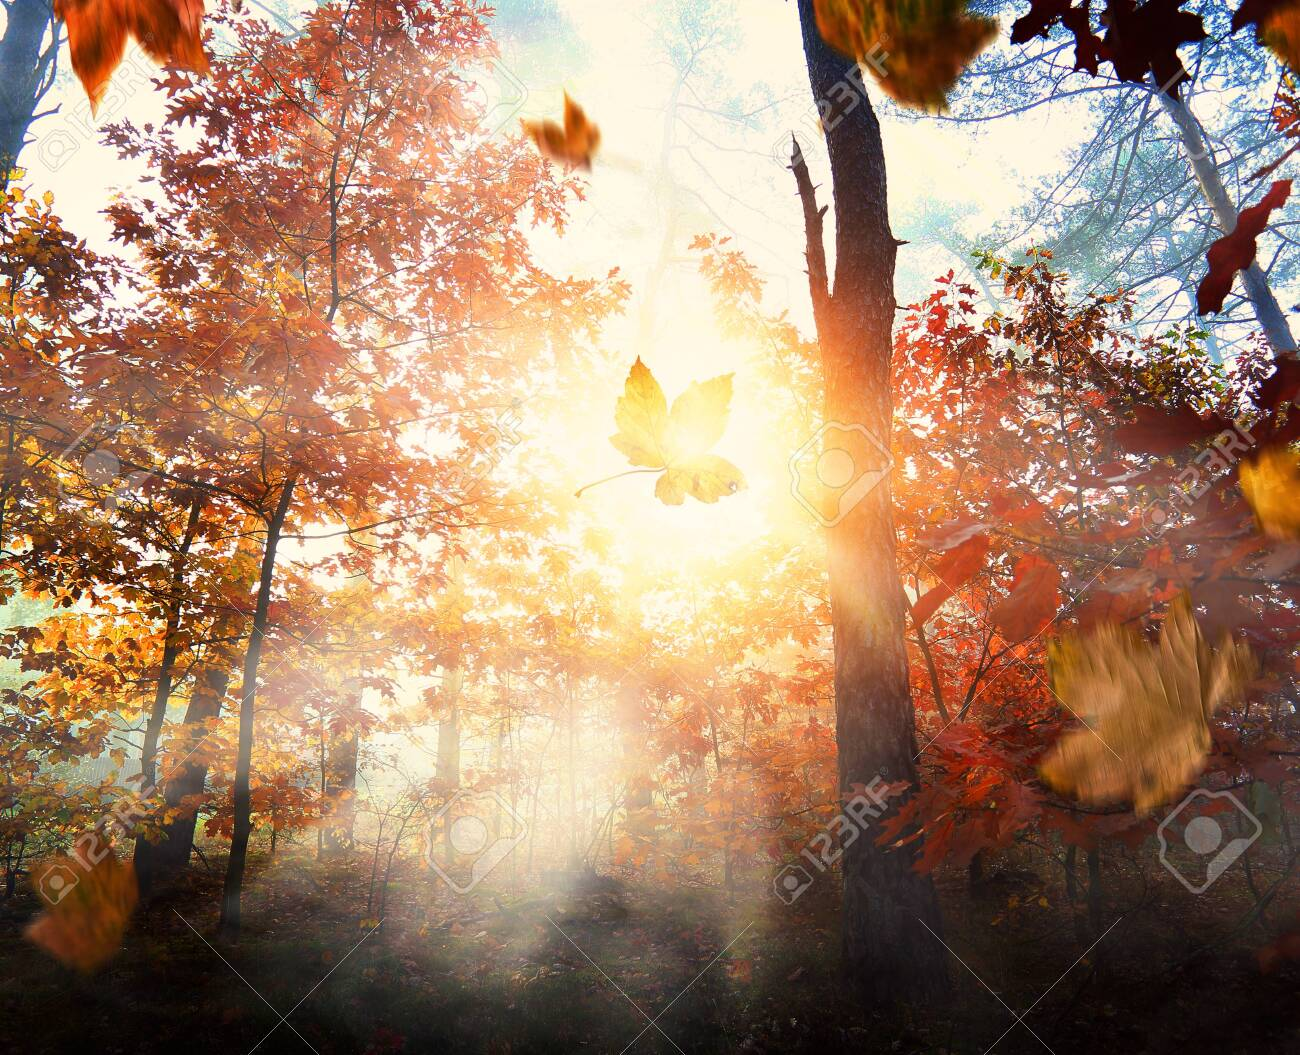 Misty and autumn morning in the forest - 133278026